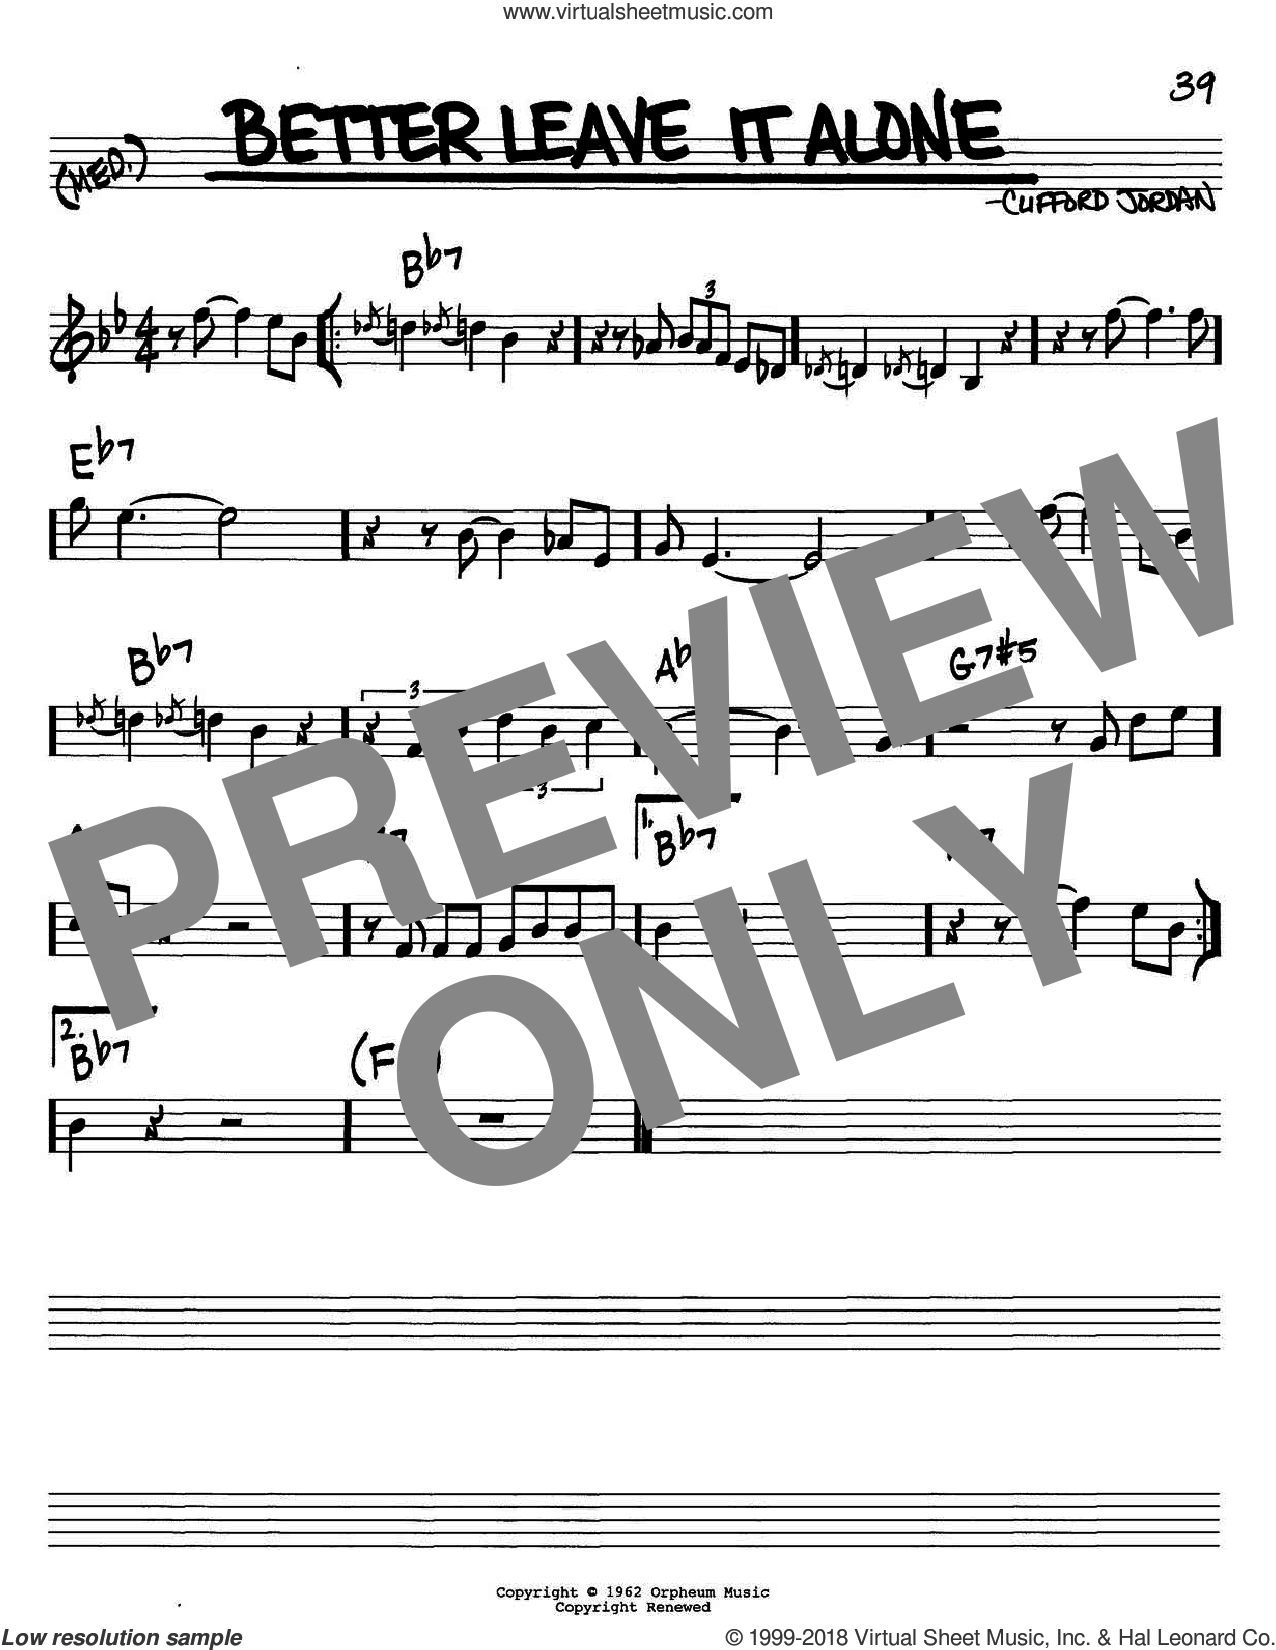 Better Leave It Alone sheet music for voice and other instruments (C) by Clifford Jordan. Score Image Preview.